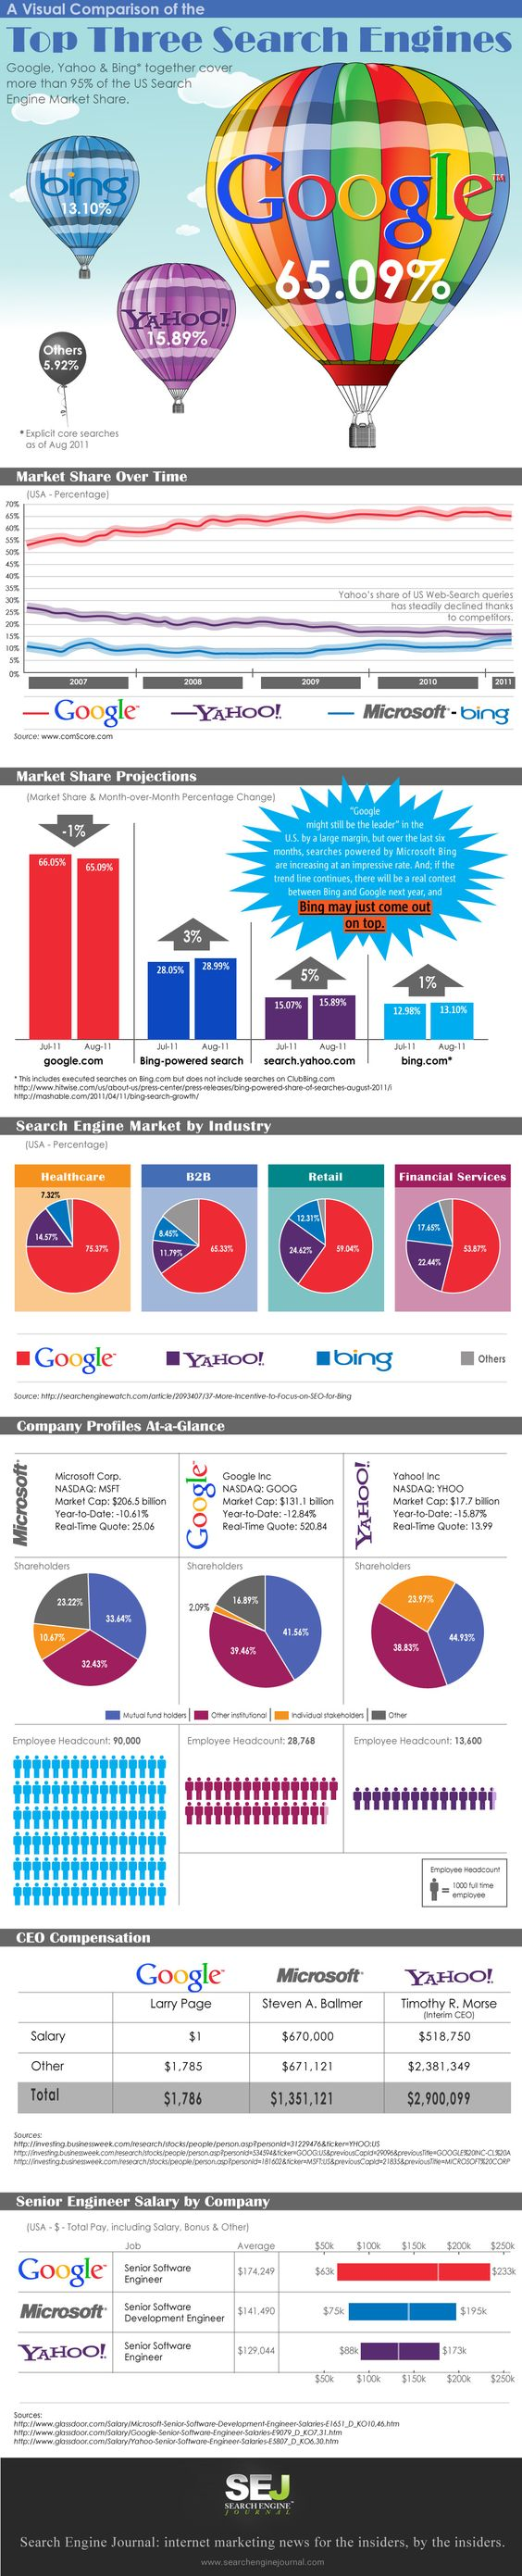 A Visual Comparison of the Top Three Search Engines